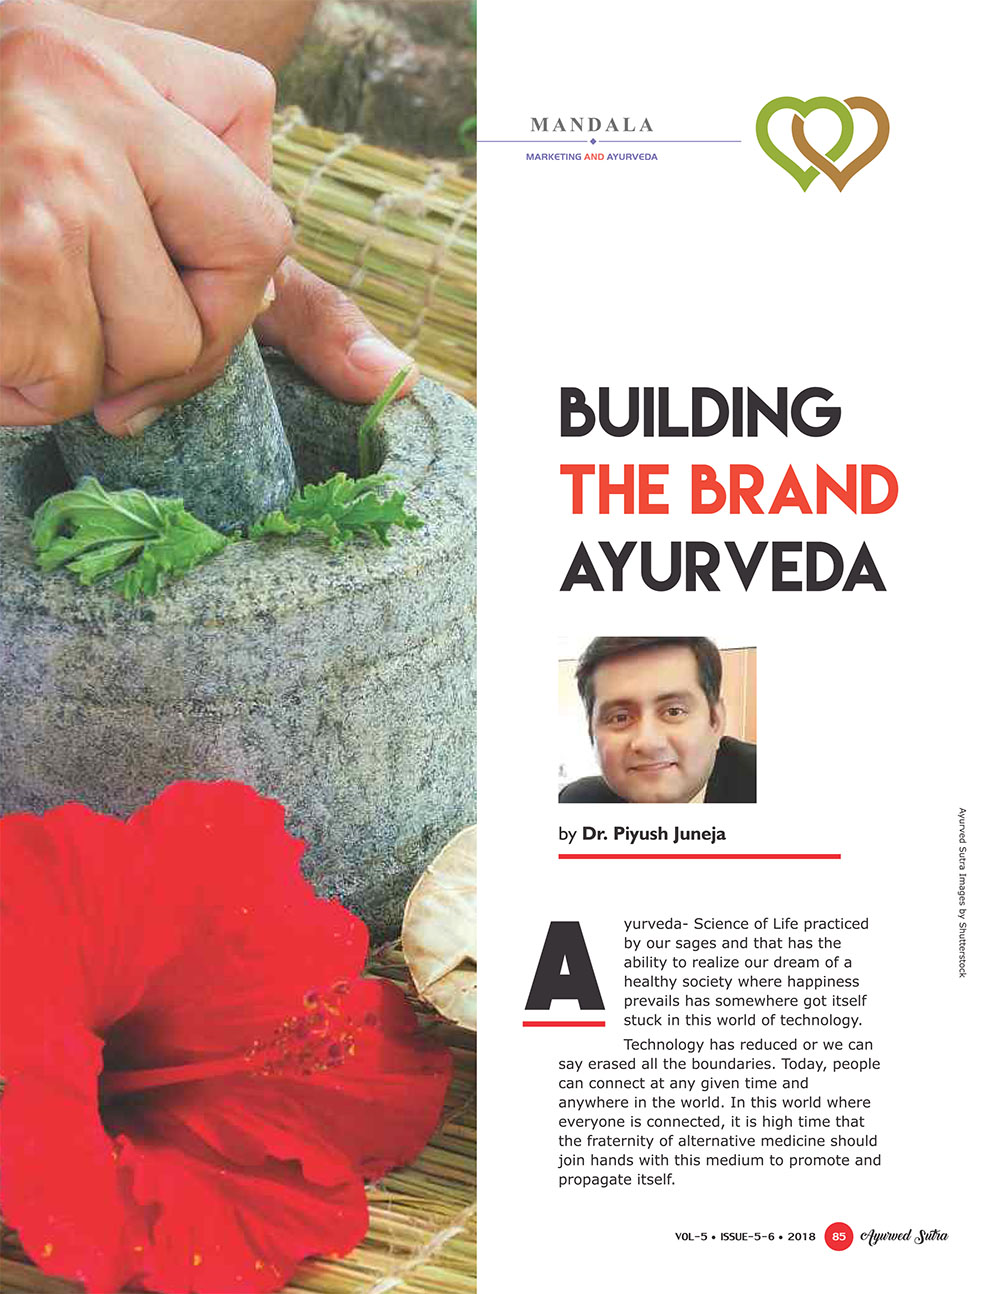 Ayurvedsutra Vol 05 issue 05 06 87 - Building the Brand Ayurveda